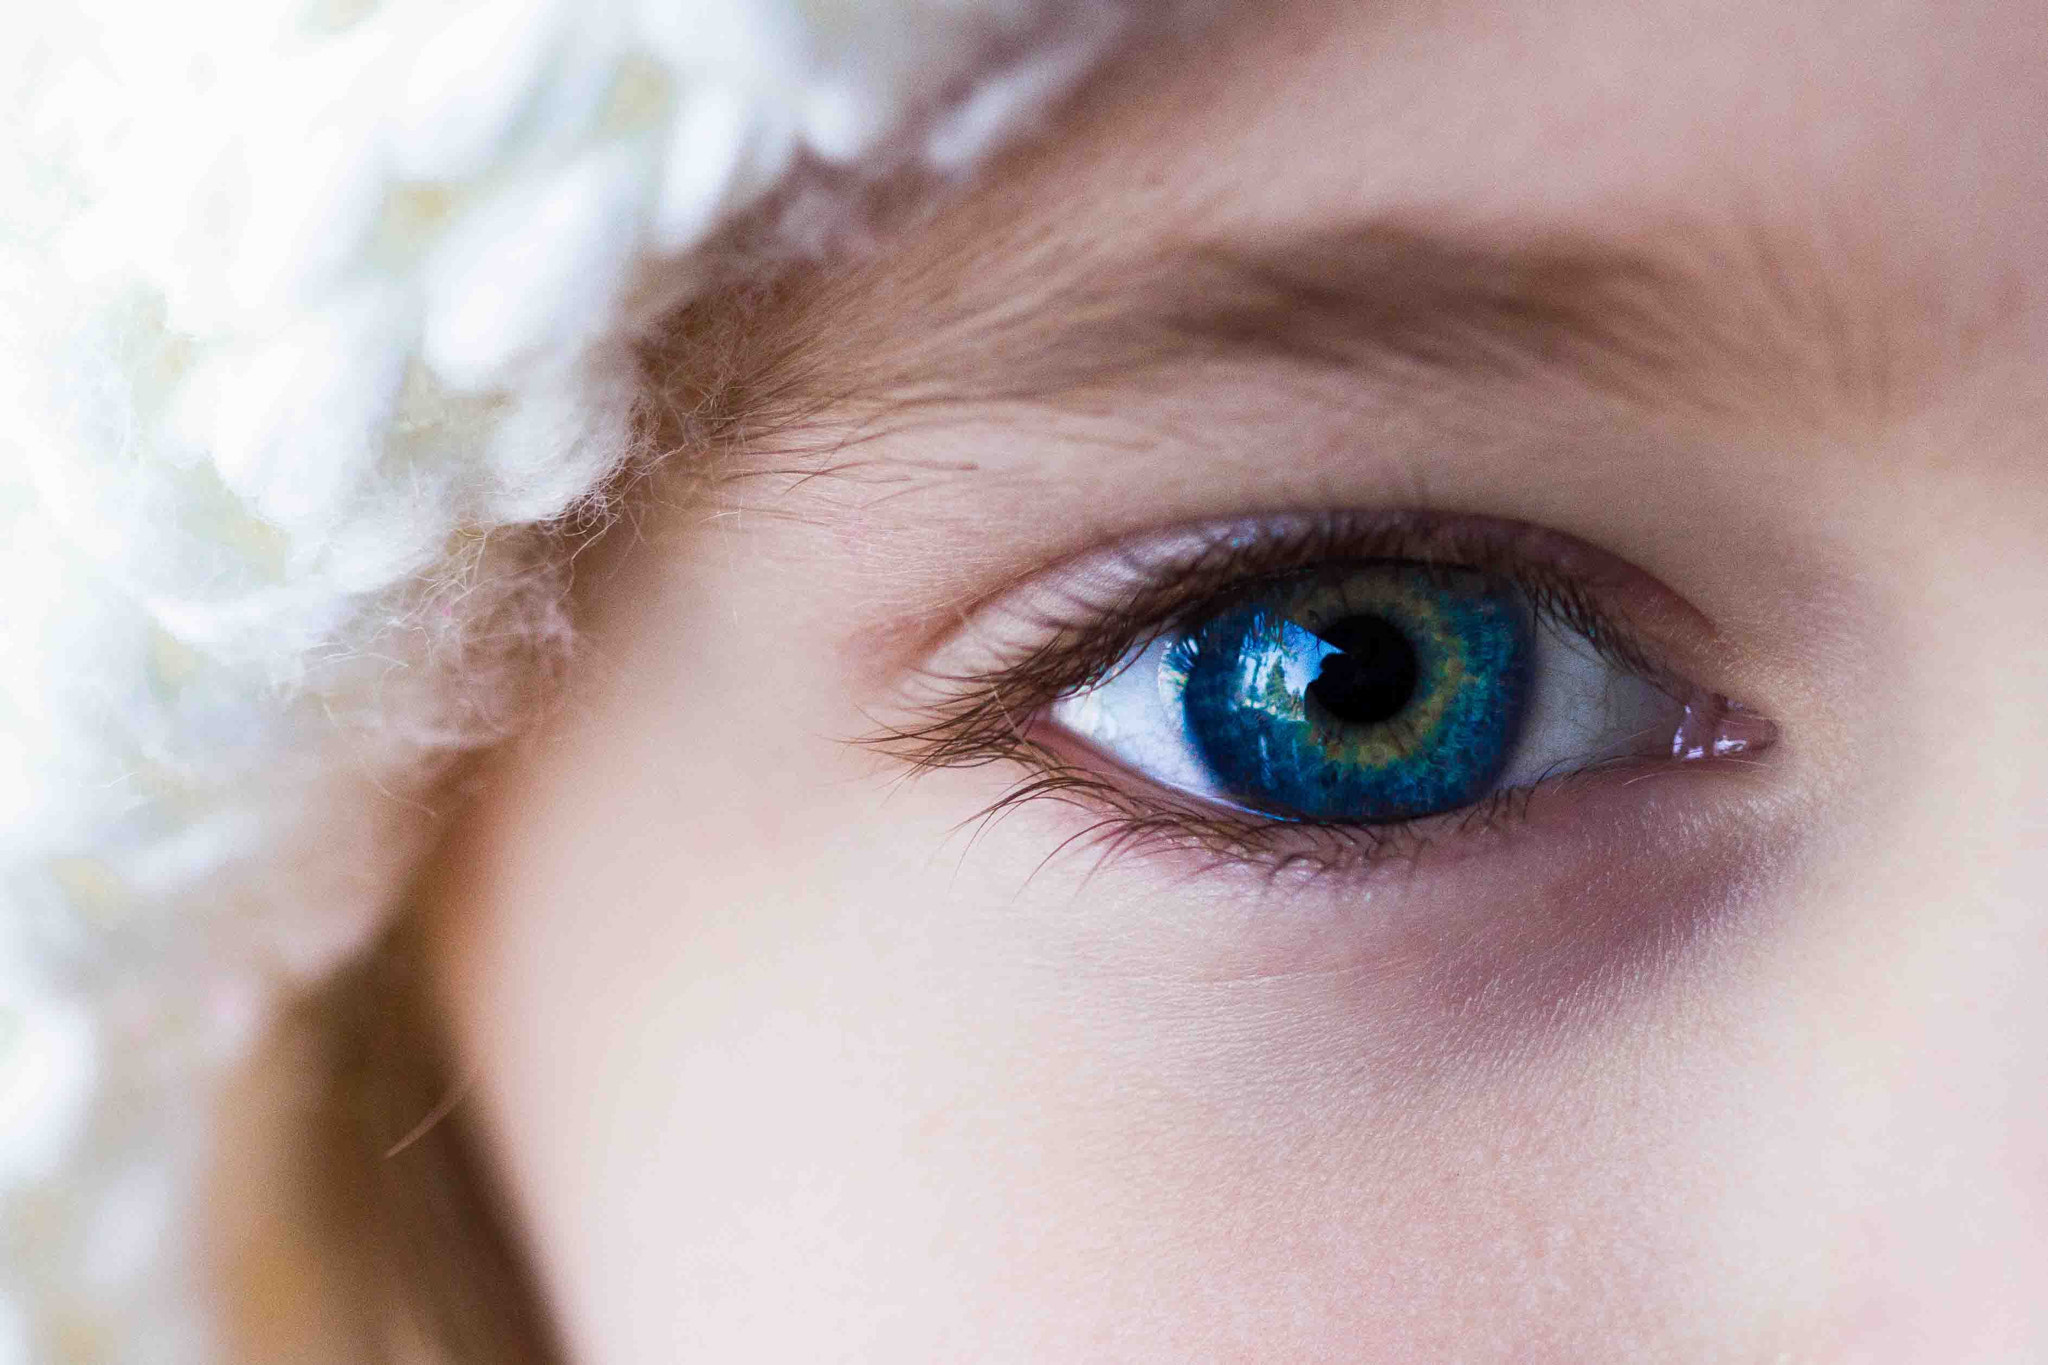 Photograph The Eye of a Child by Andreas Kvale on 500px